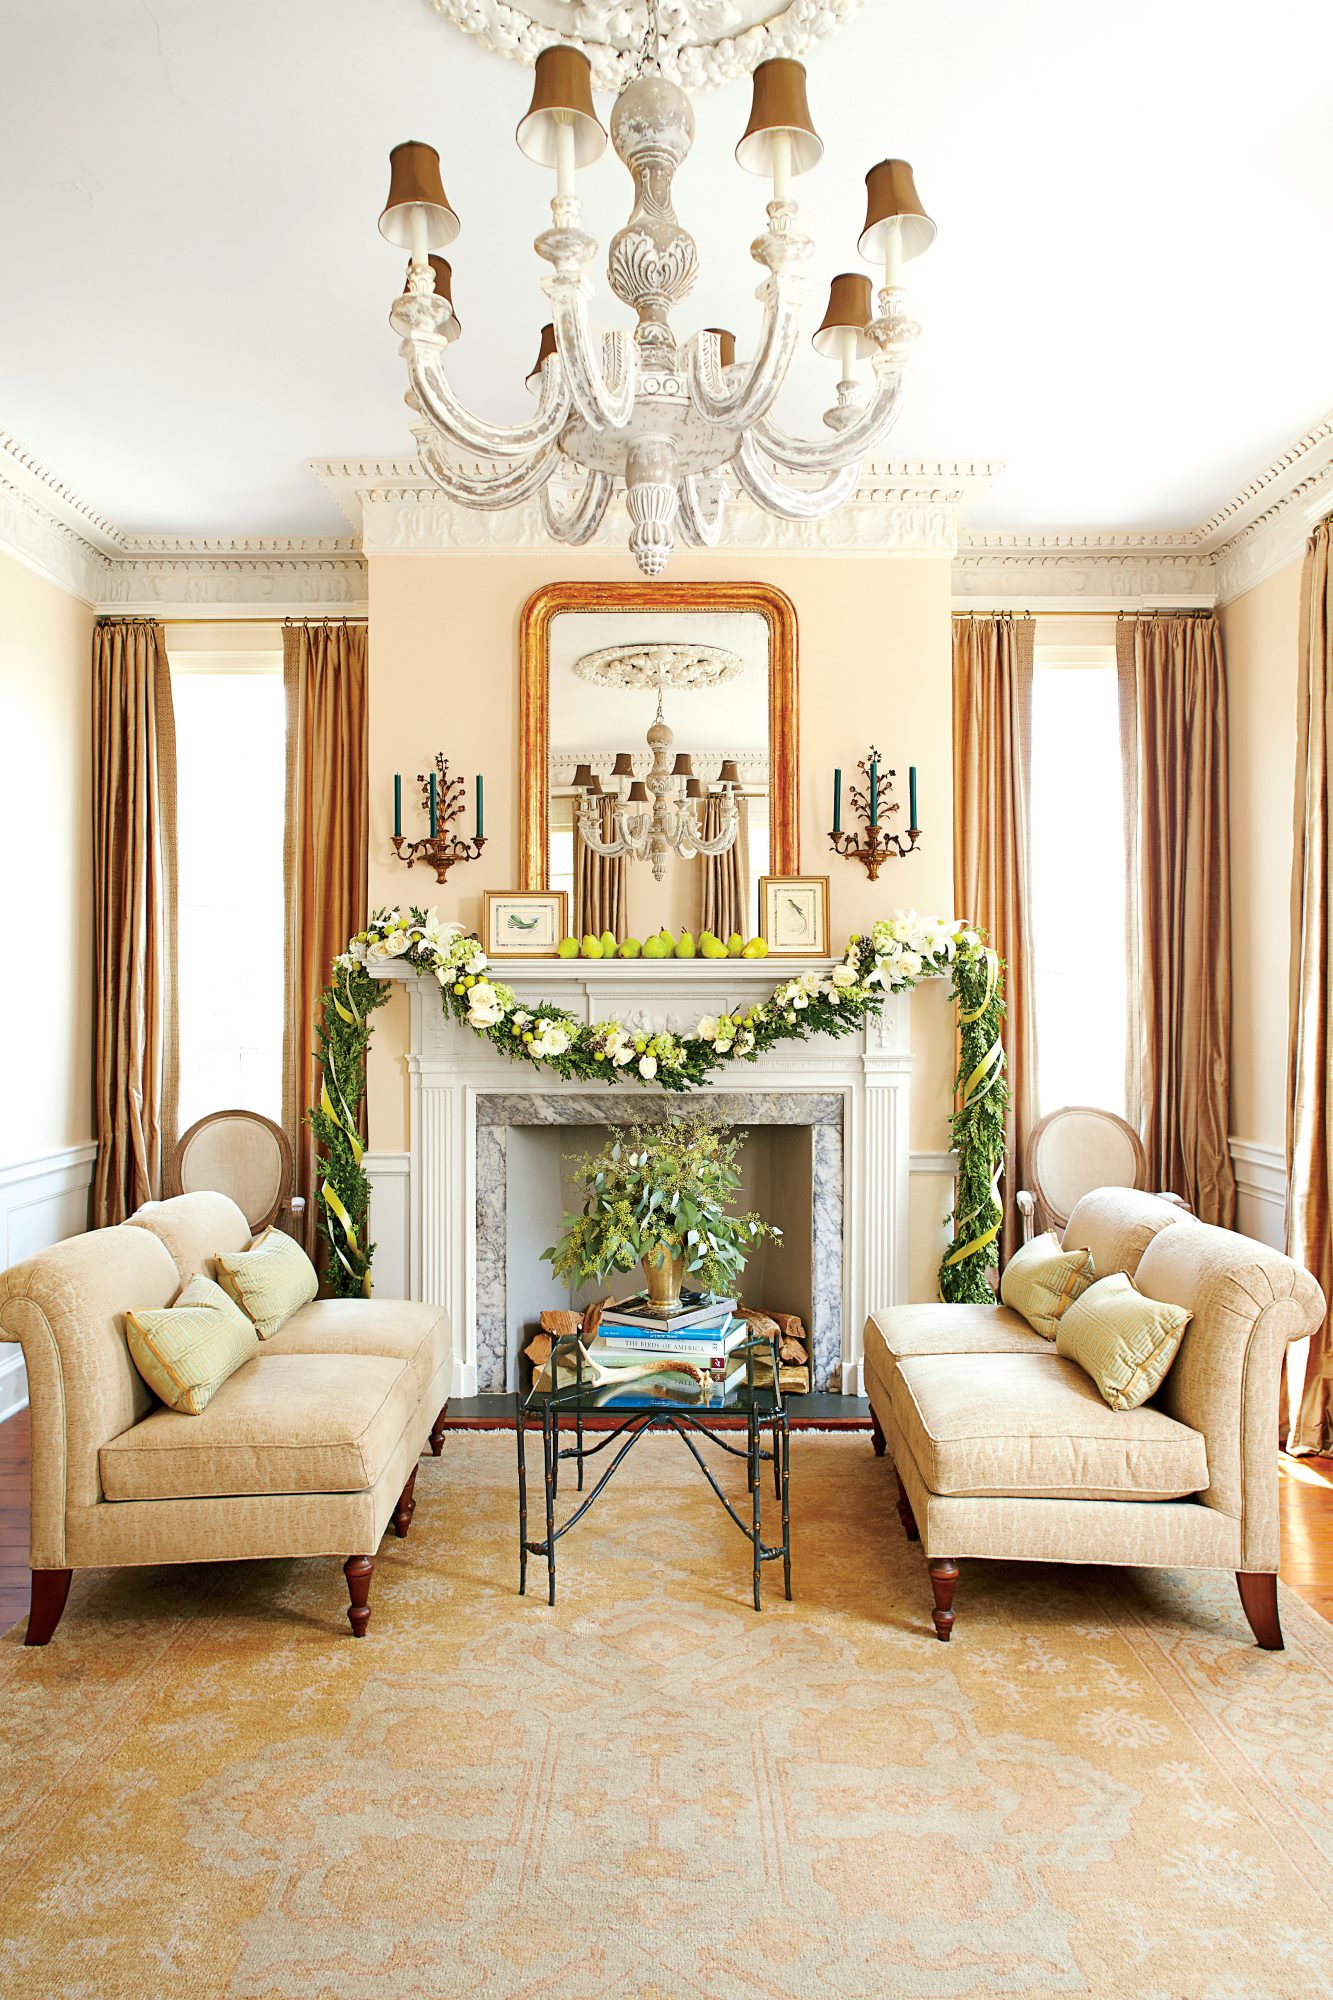 How southerners decorate for the holidays southern living - Southern living decorating ...